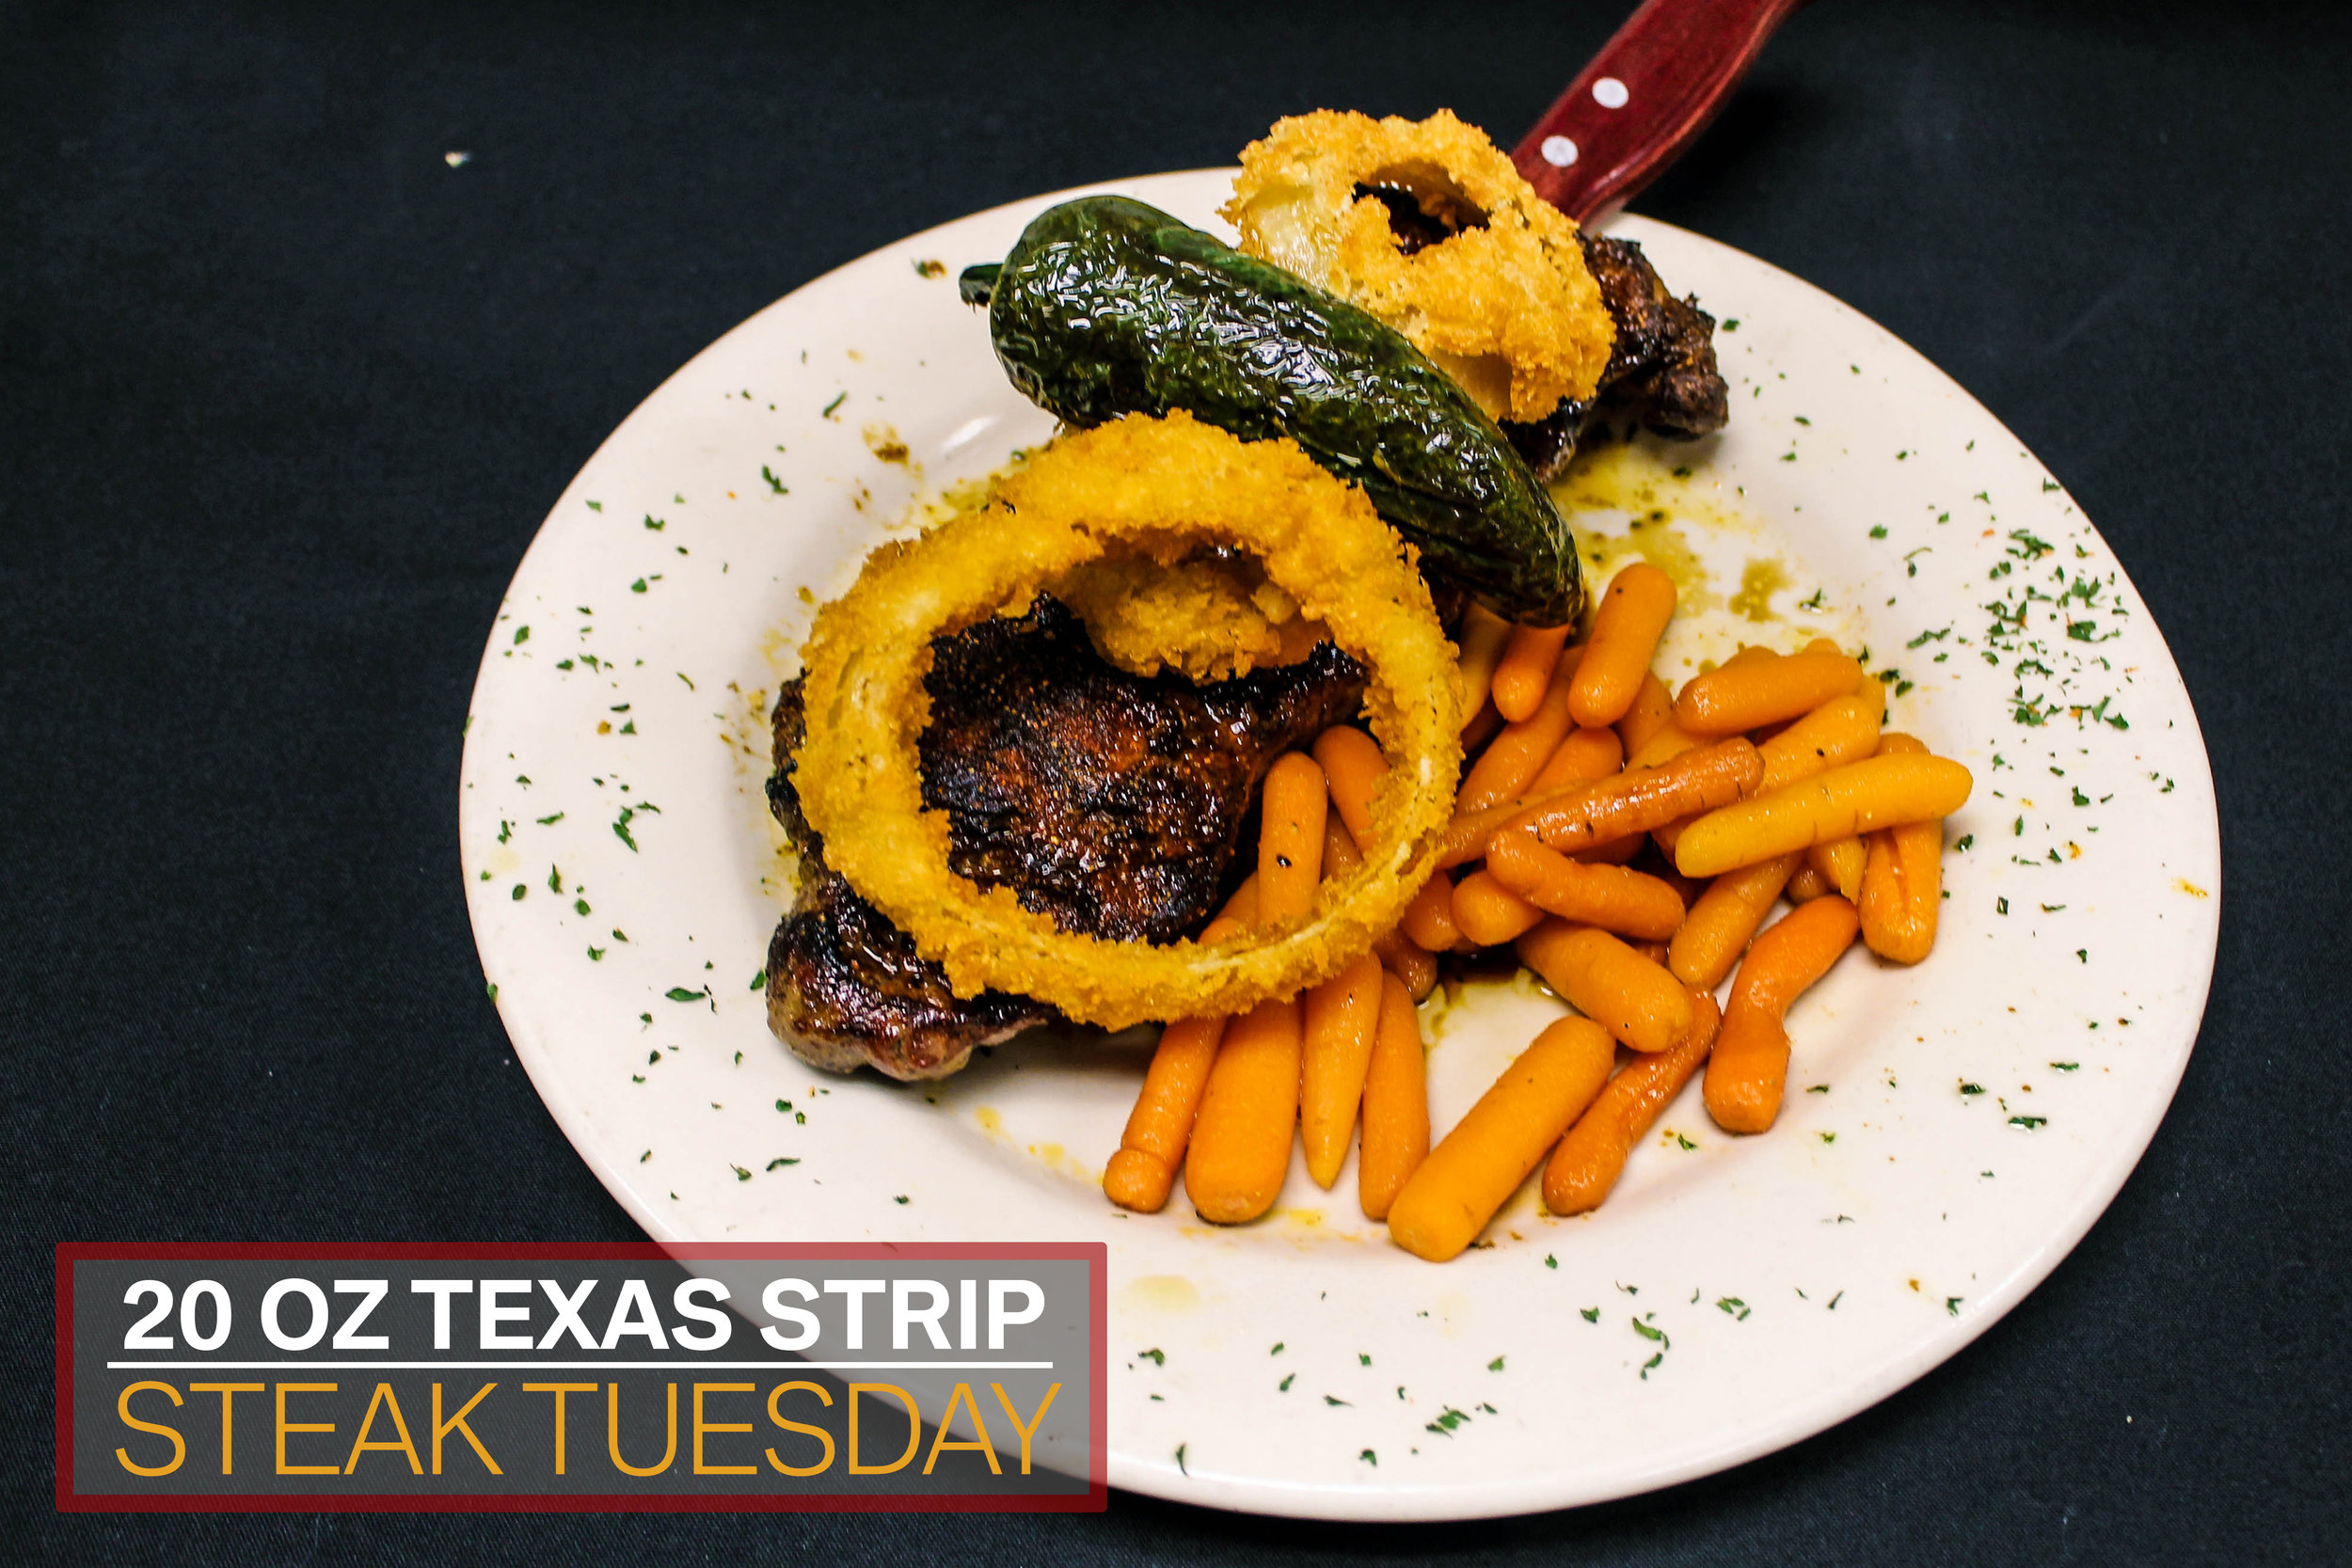 Tuesday  20 oz. Texas Strip Steak $22.50  4 P.M. - 10 P.M.